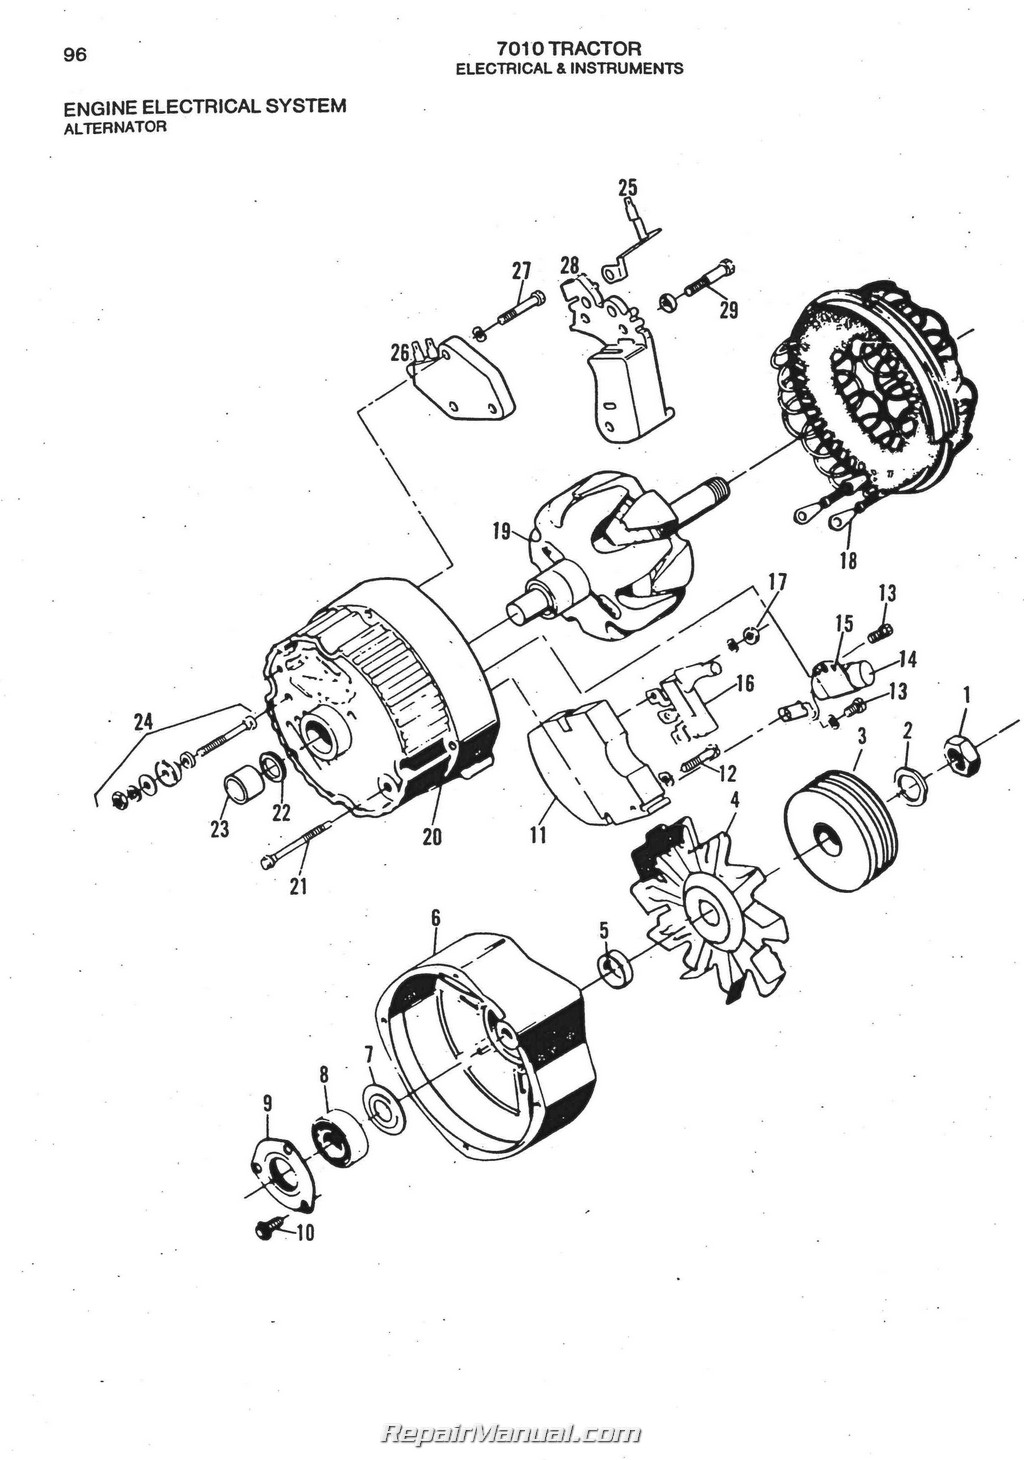 International Harvester Farmall 806 856 1206 1256 And 1456 Factory Service Manual Js Ih S 806 Plus together with Mobile Hydraulics Troubleshooting Pt 2 as well Parts Actuator Cylinder 10 besides Disk Brake Master Cylinder Assembly Part 3 additionally Refuse trucks. on hydraulic cylinder parts